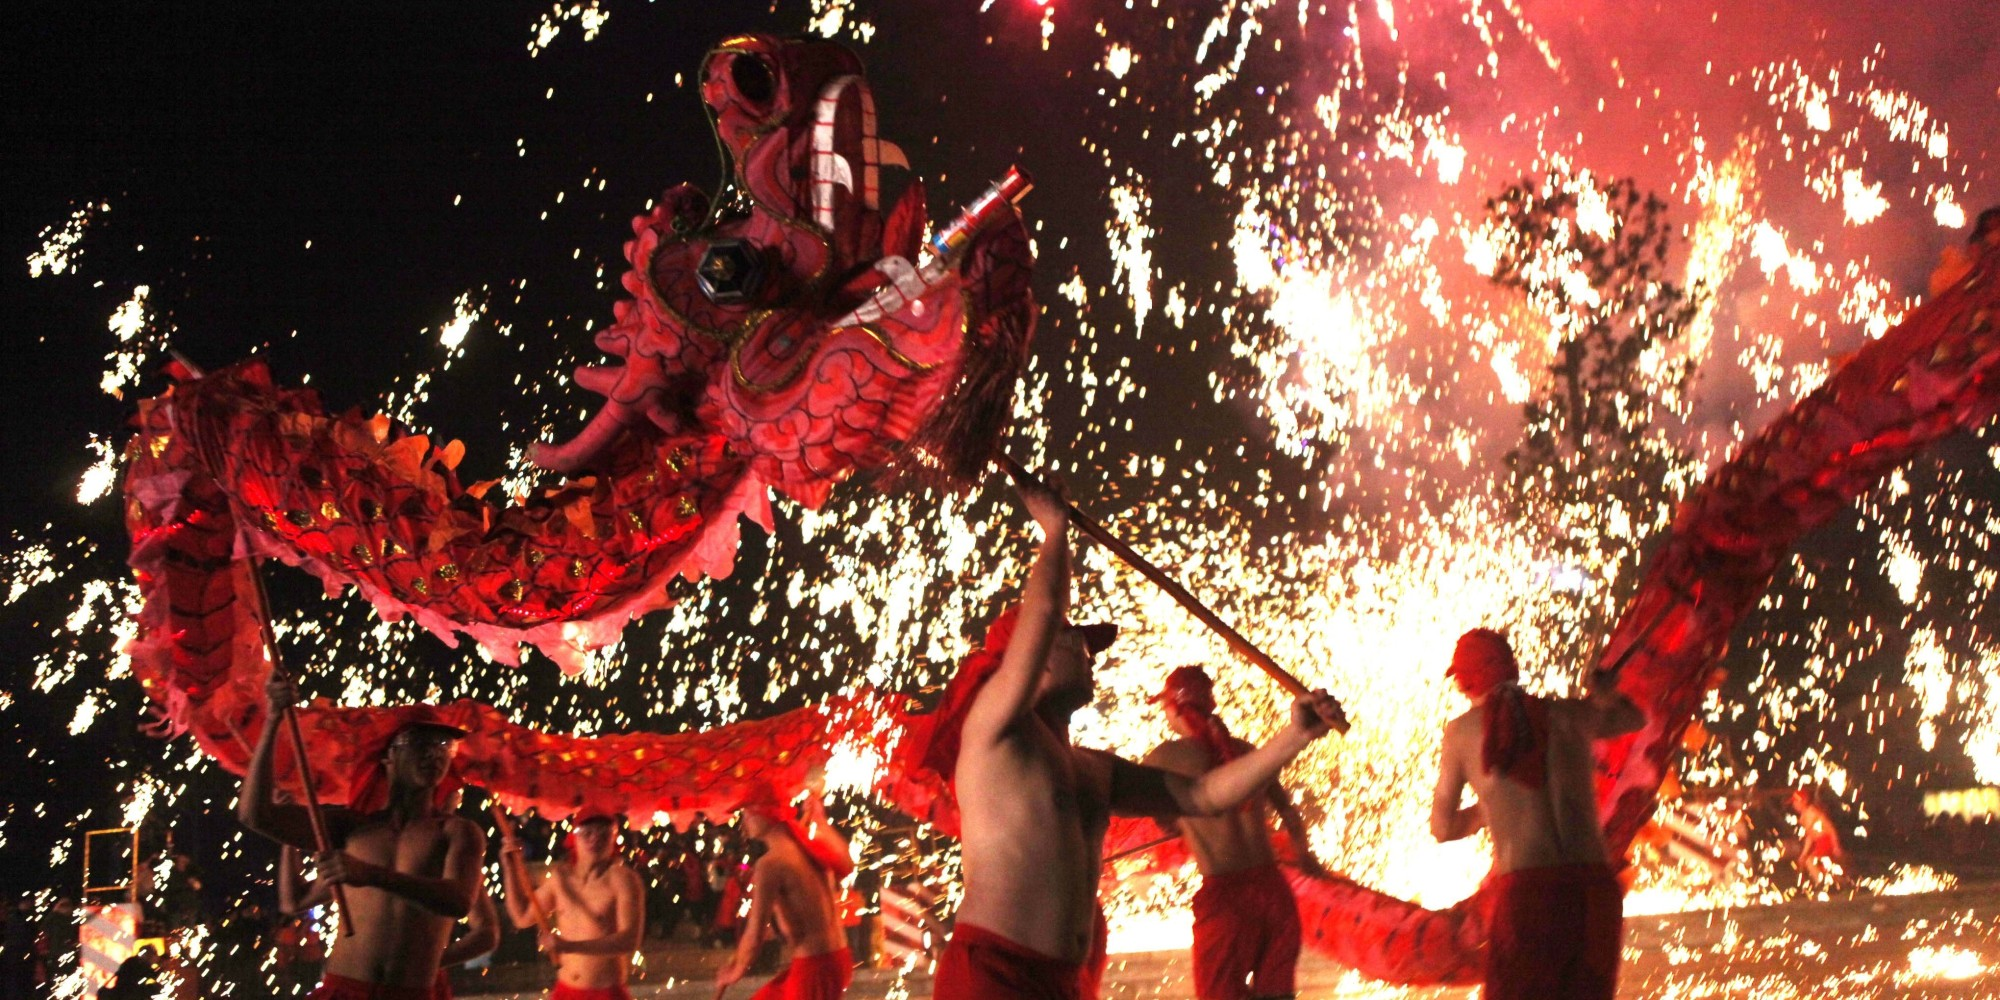 http://i.huffpost.com/gen/2414662/images/o-CHINESE-NEW-YEAR-LANTERNS-facebook.jpg - Festivals Around the World